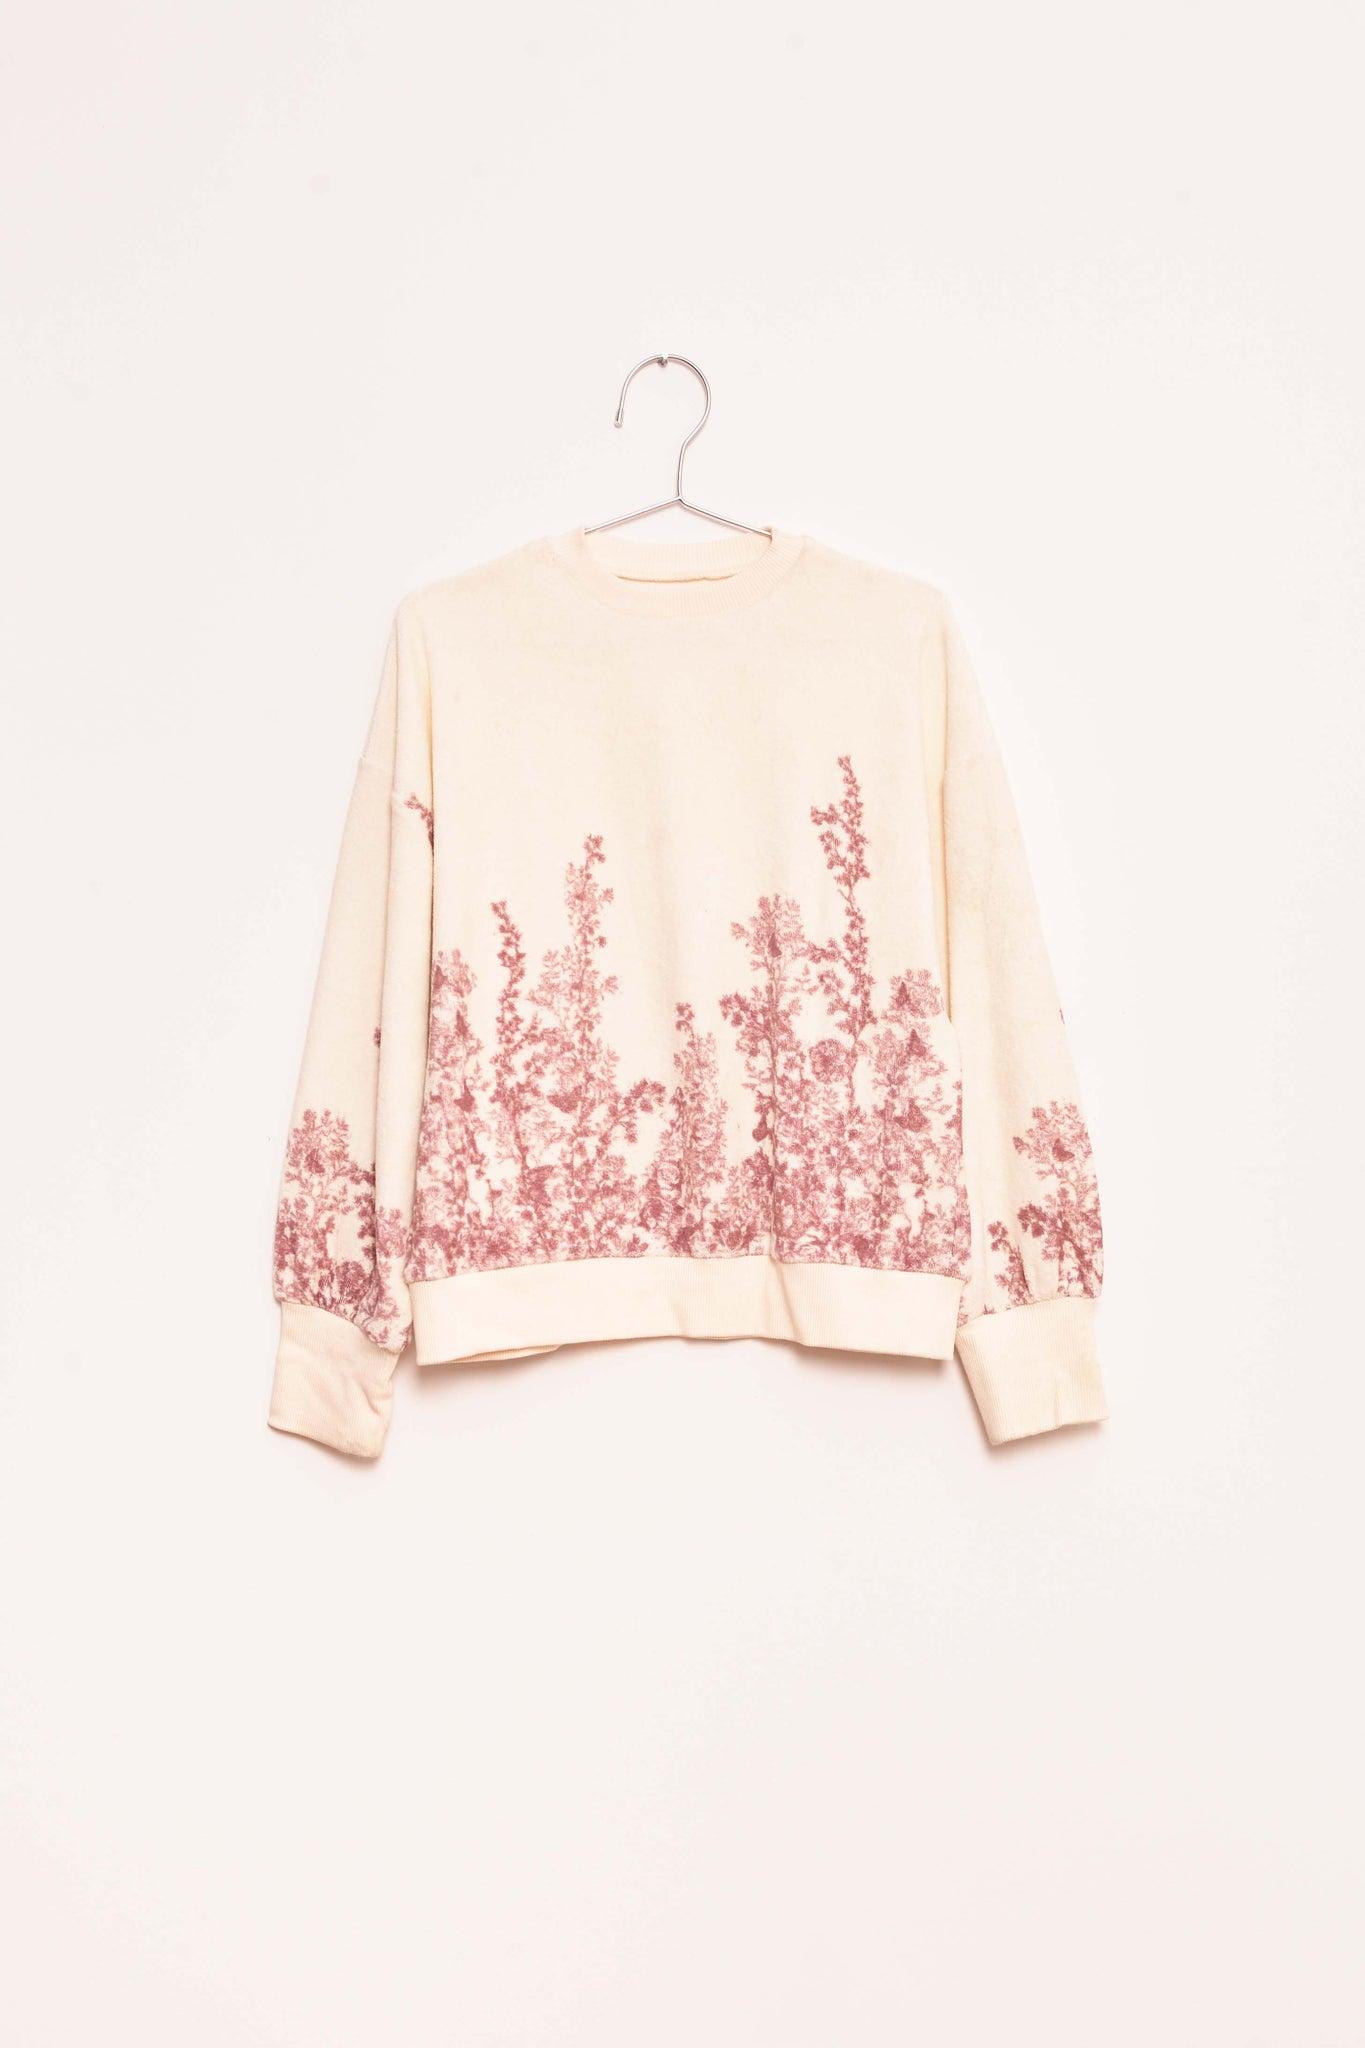 Towel Flower Sweatshirt